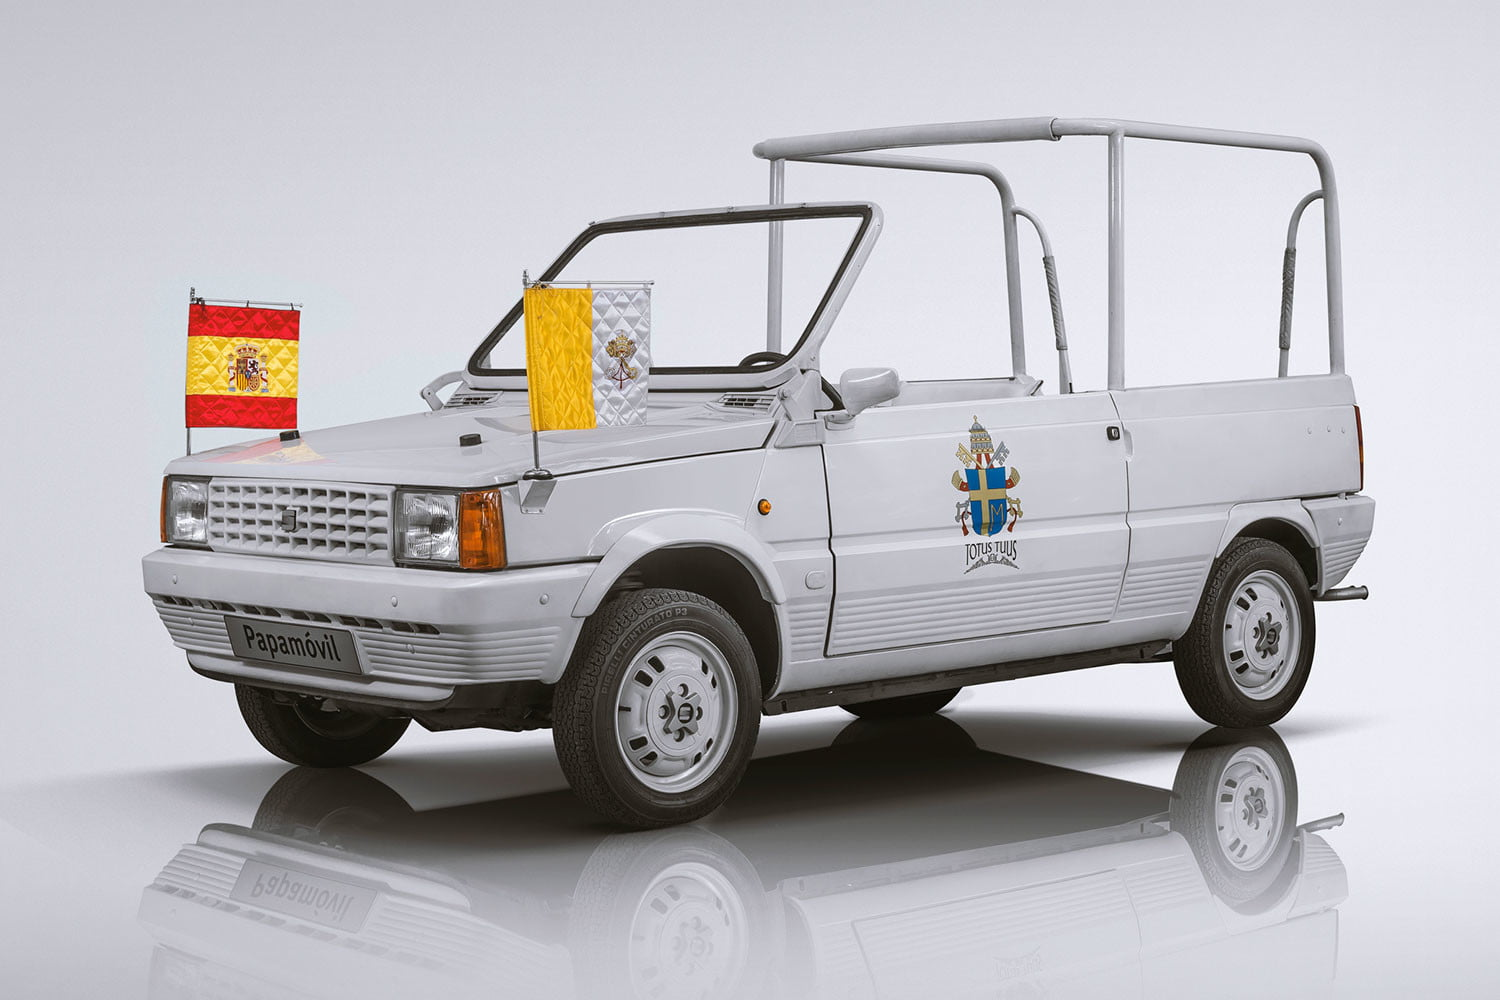 10 sweet popemobiles that will make you wish held the keys of heaven 05 34 frontal 2 seat papamovil